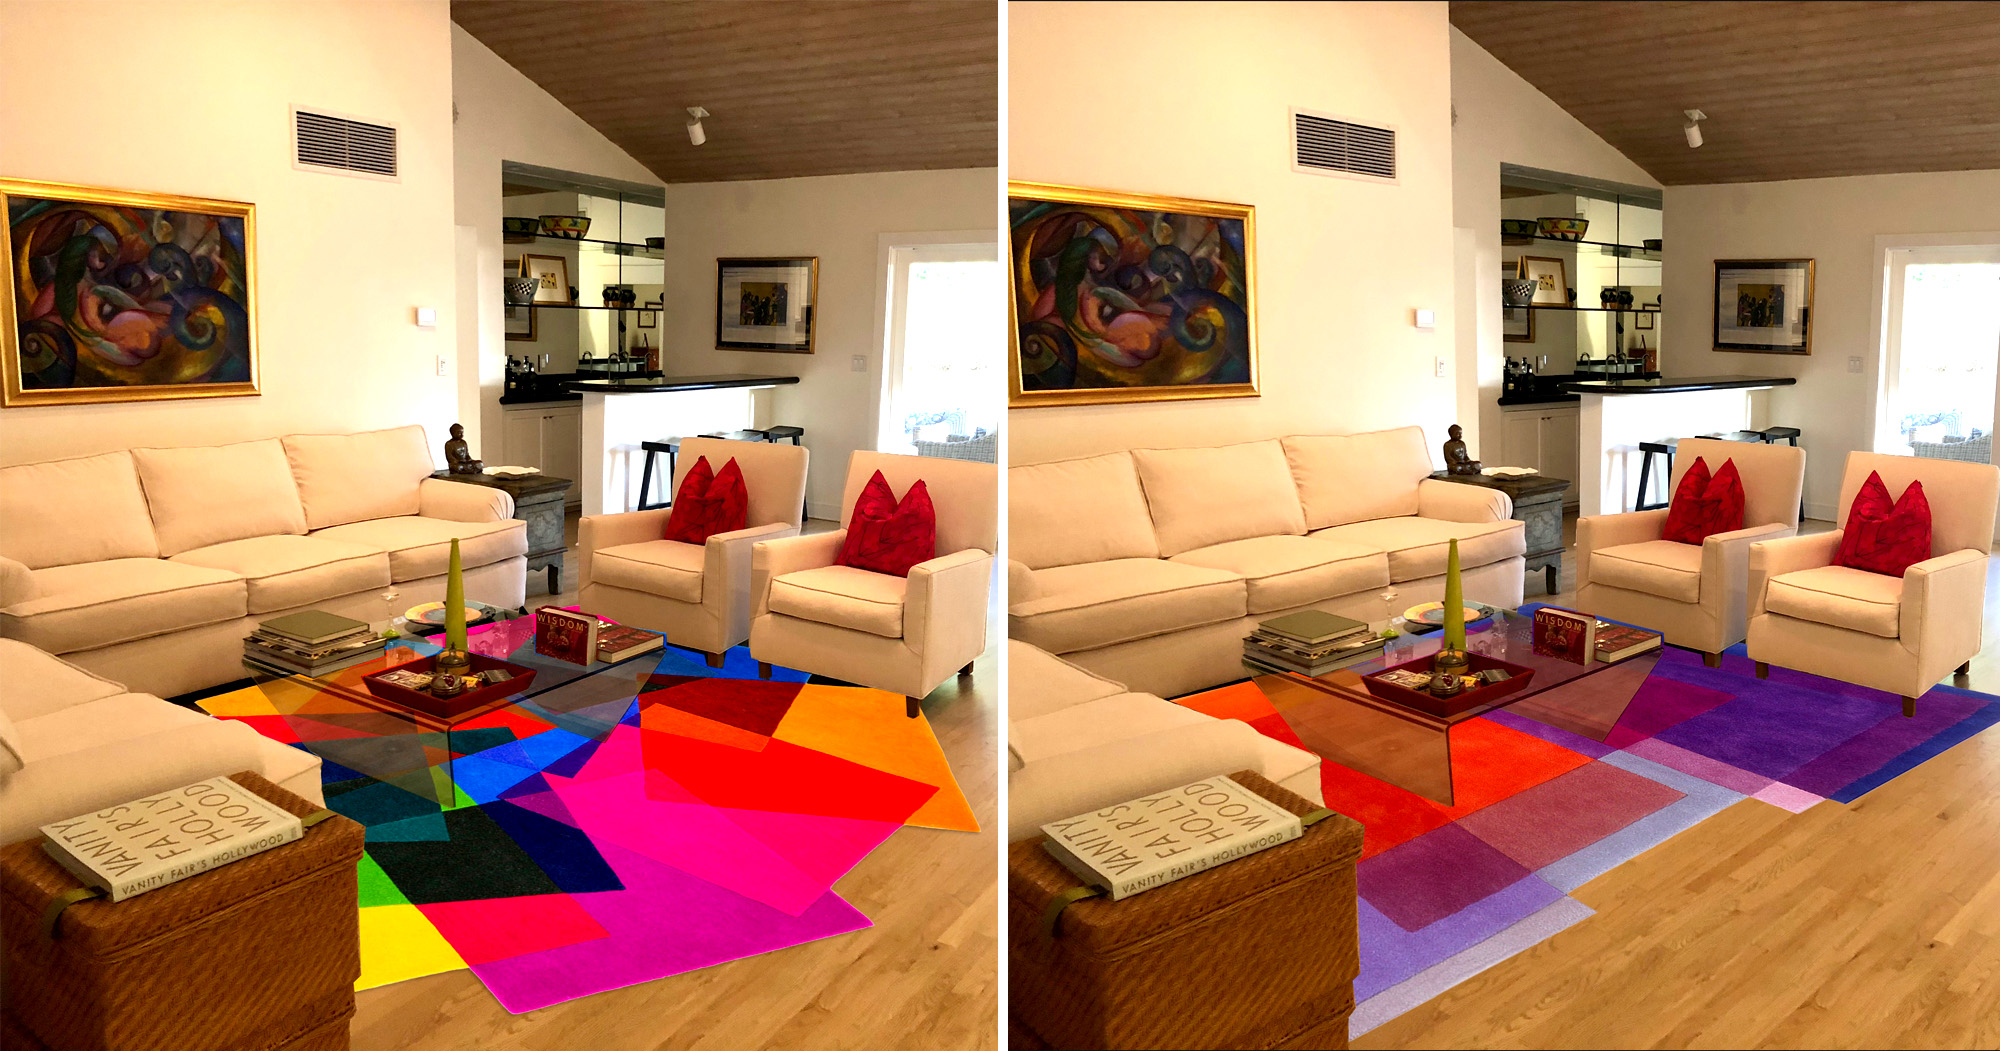 Designer rugs can be a fun collaboration with the designer